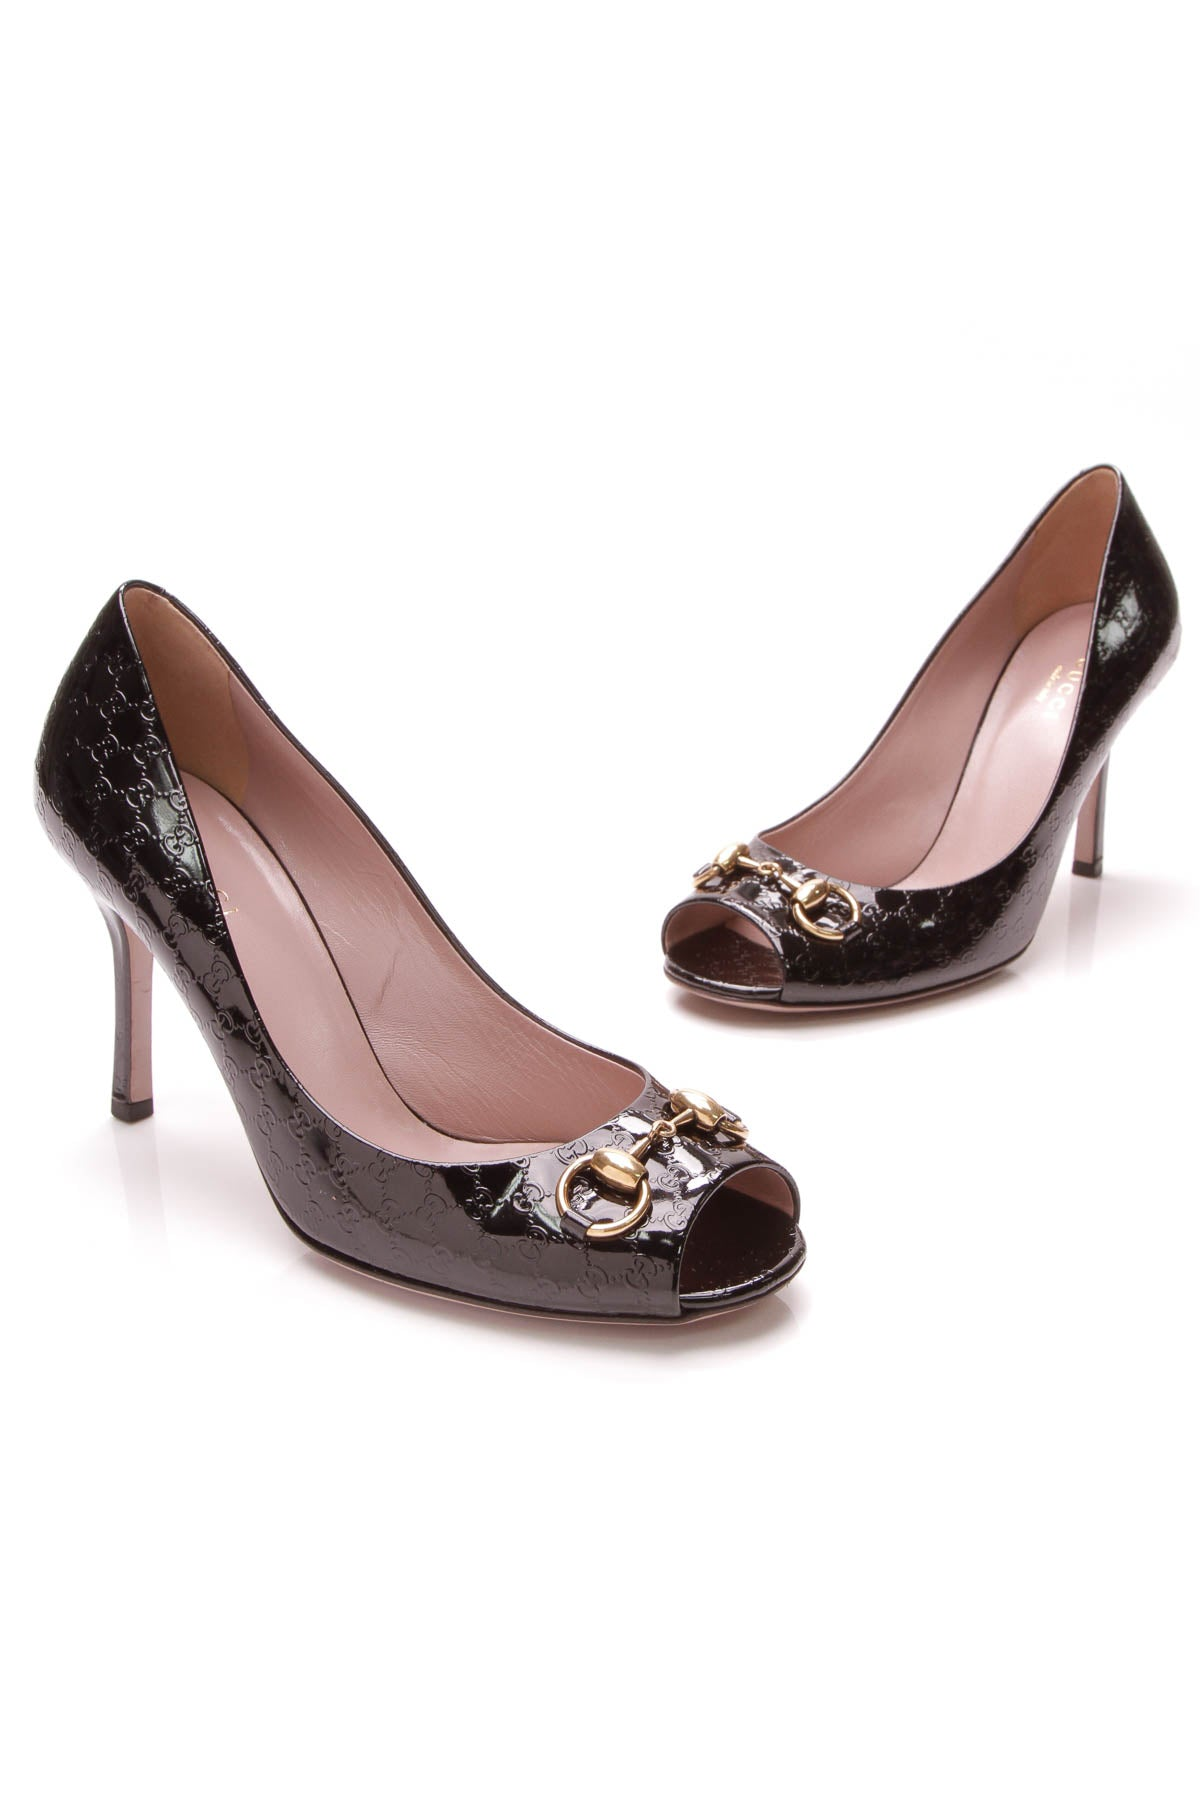 ddd3f9860999 Gucci Horsebit Pumps - Black GG Patent Leather Size 38.5 – Couture USA